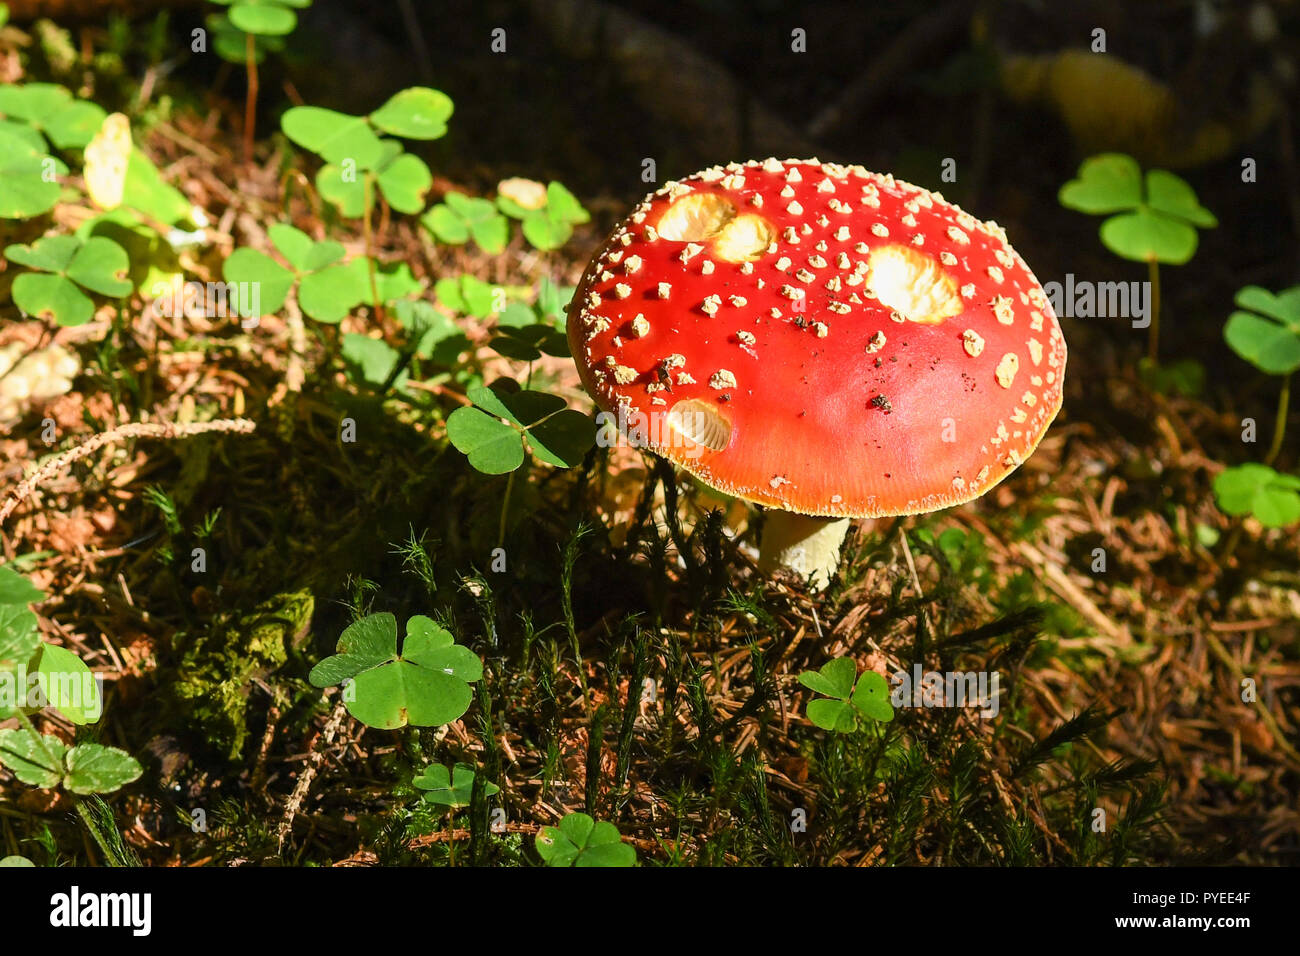 Amanita muscaria or fairytale toadstool  surrounded by wood sorrel in the eastern Black Forest, Germany, Europe - Stock Image